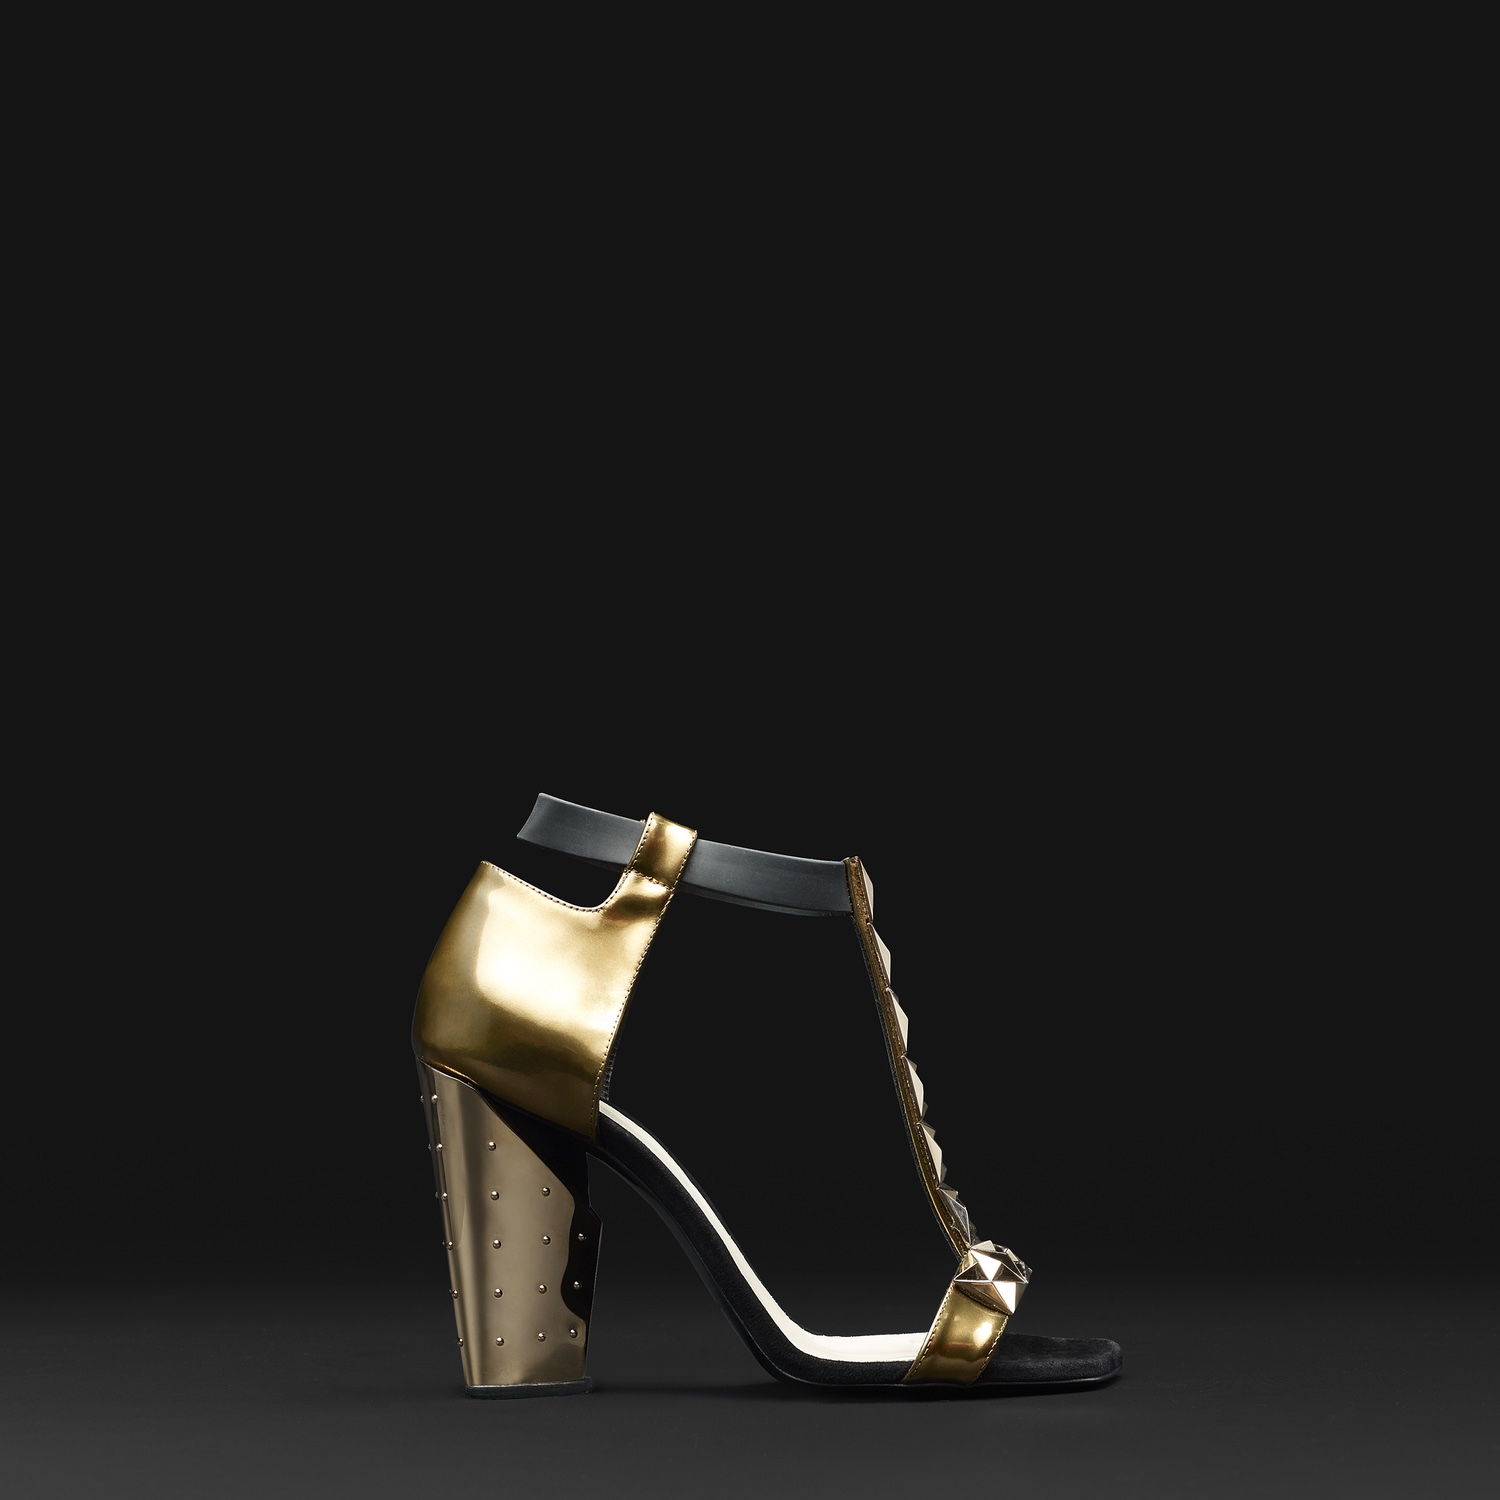 ALAINTONDOWSKI_FALLWINTER2015_SHOES_AT030-B